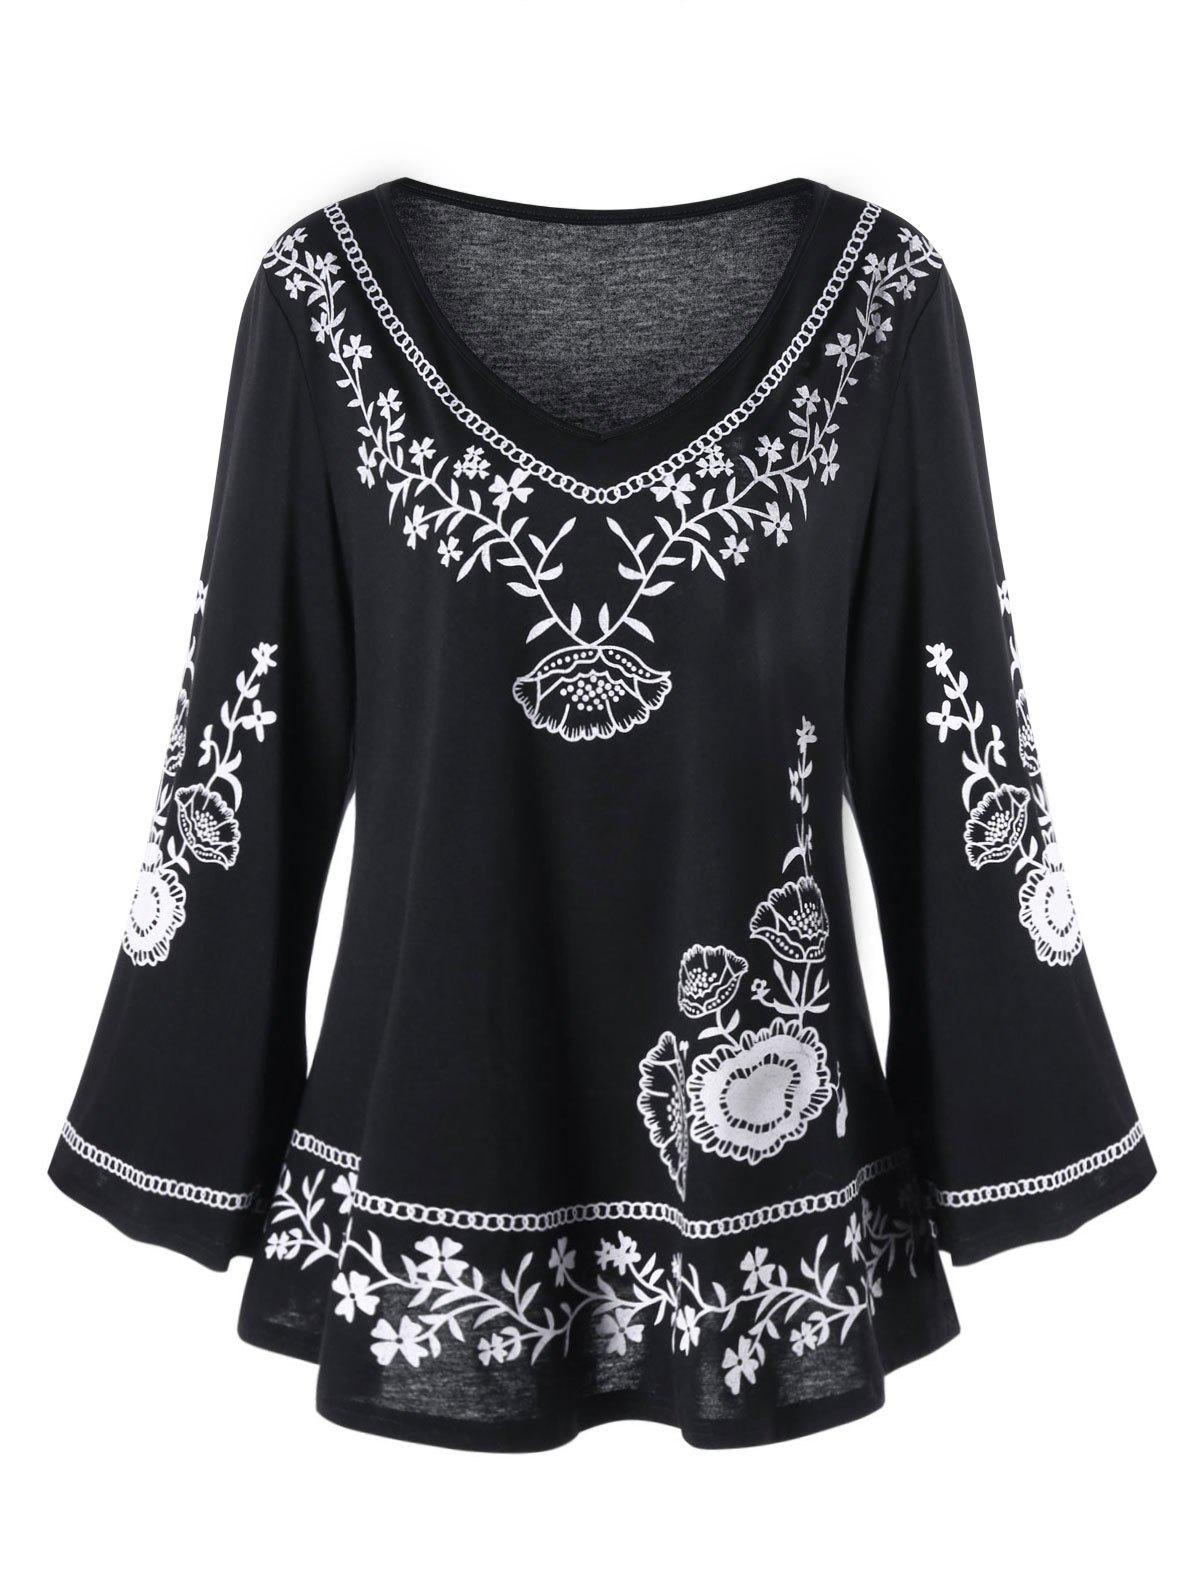 Plus Size Monochrome Floral Bell Sleeve TopWOMEN<br><br>Size: 5XL; Color: BLACK; Material: Polyester,Spandex; Shirt Length: Long; Sleeve Length: Full; Collar: V-Neck; Style: Casual; Season: Fall,Spring; Pattern Type: Floral; Weight: 0.3100kg; Package Contents: 1 x Top;